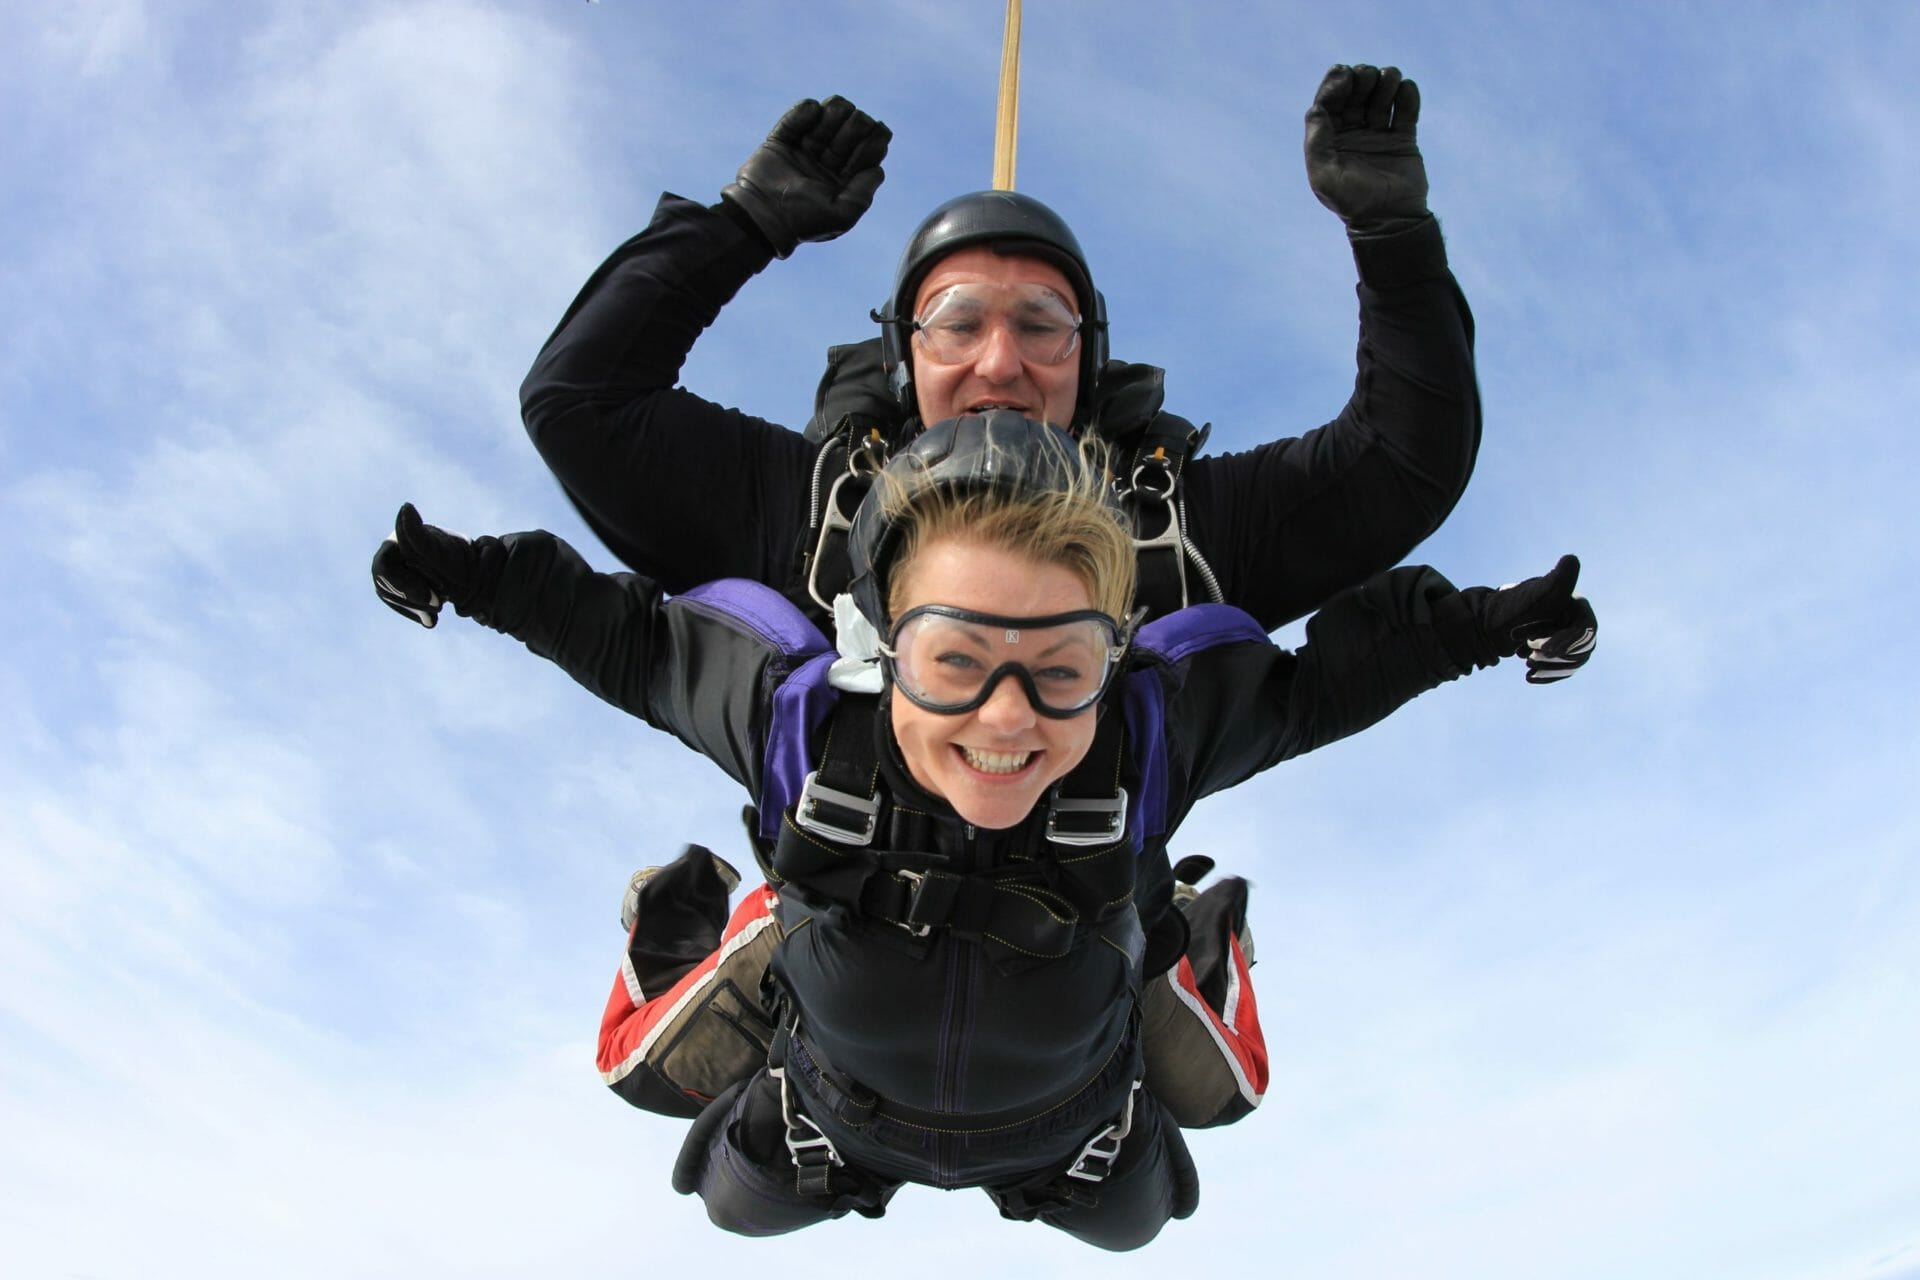 Two tandem skydivers in mid air